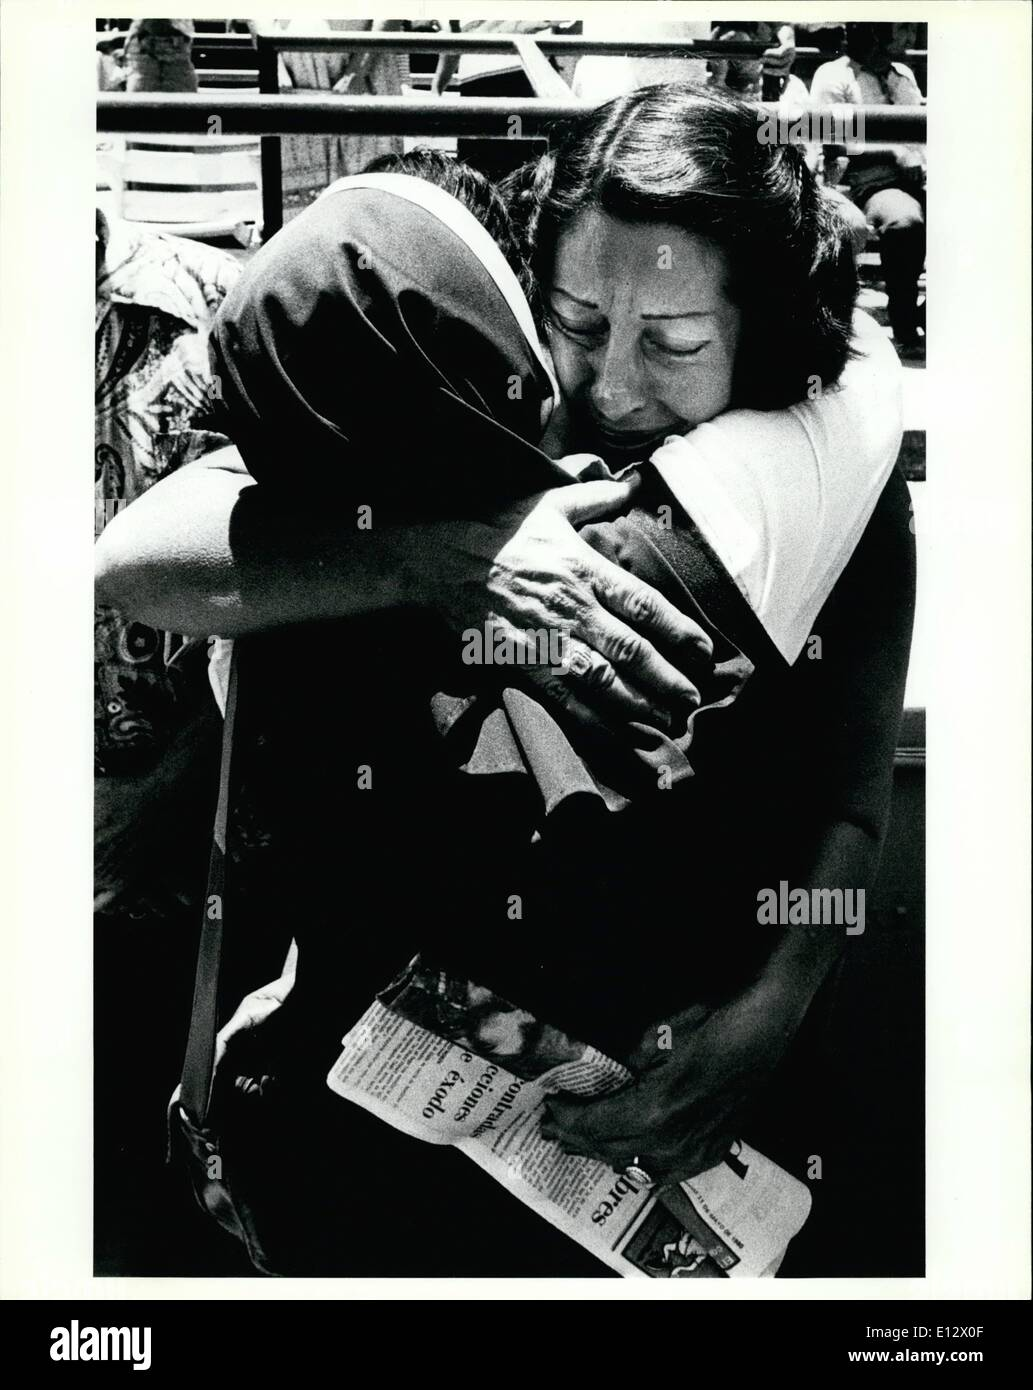 Feb. 25, 2012 - A Cuban refugee woman gives a tearful hug to a nun after the sister had helped deliver the first mass to the refugees since they arrived in the U.S. The mass was performed in the Orange Bowl in Miami. The Orange Bowl was used as a holding area for the refugees before they were move to processing centers in the Miami area. - Stock Image